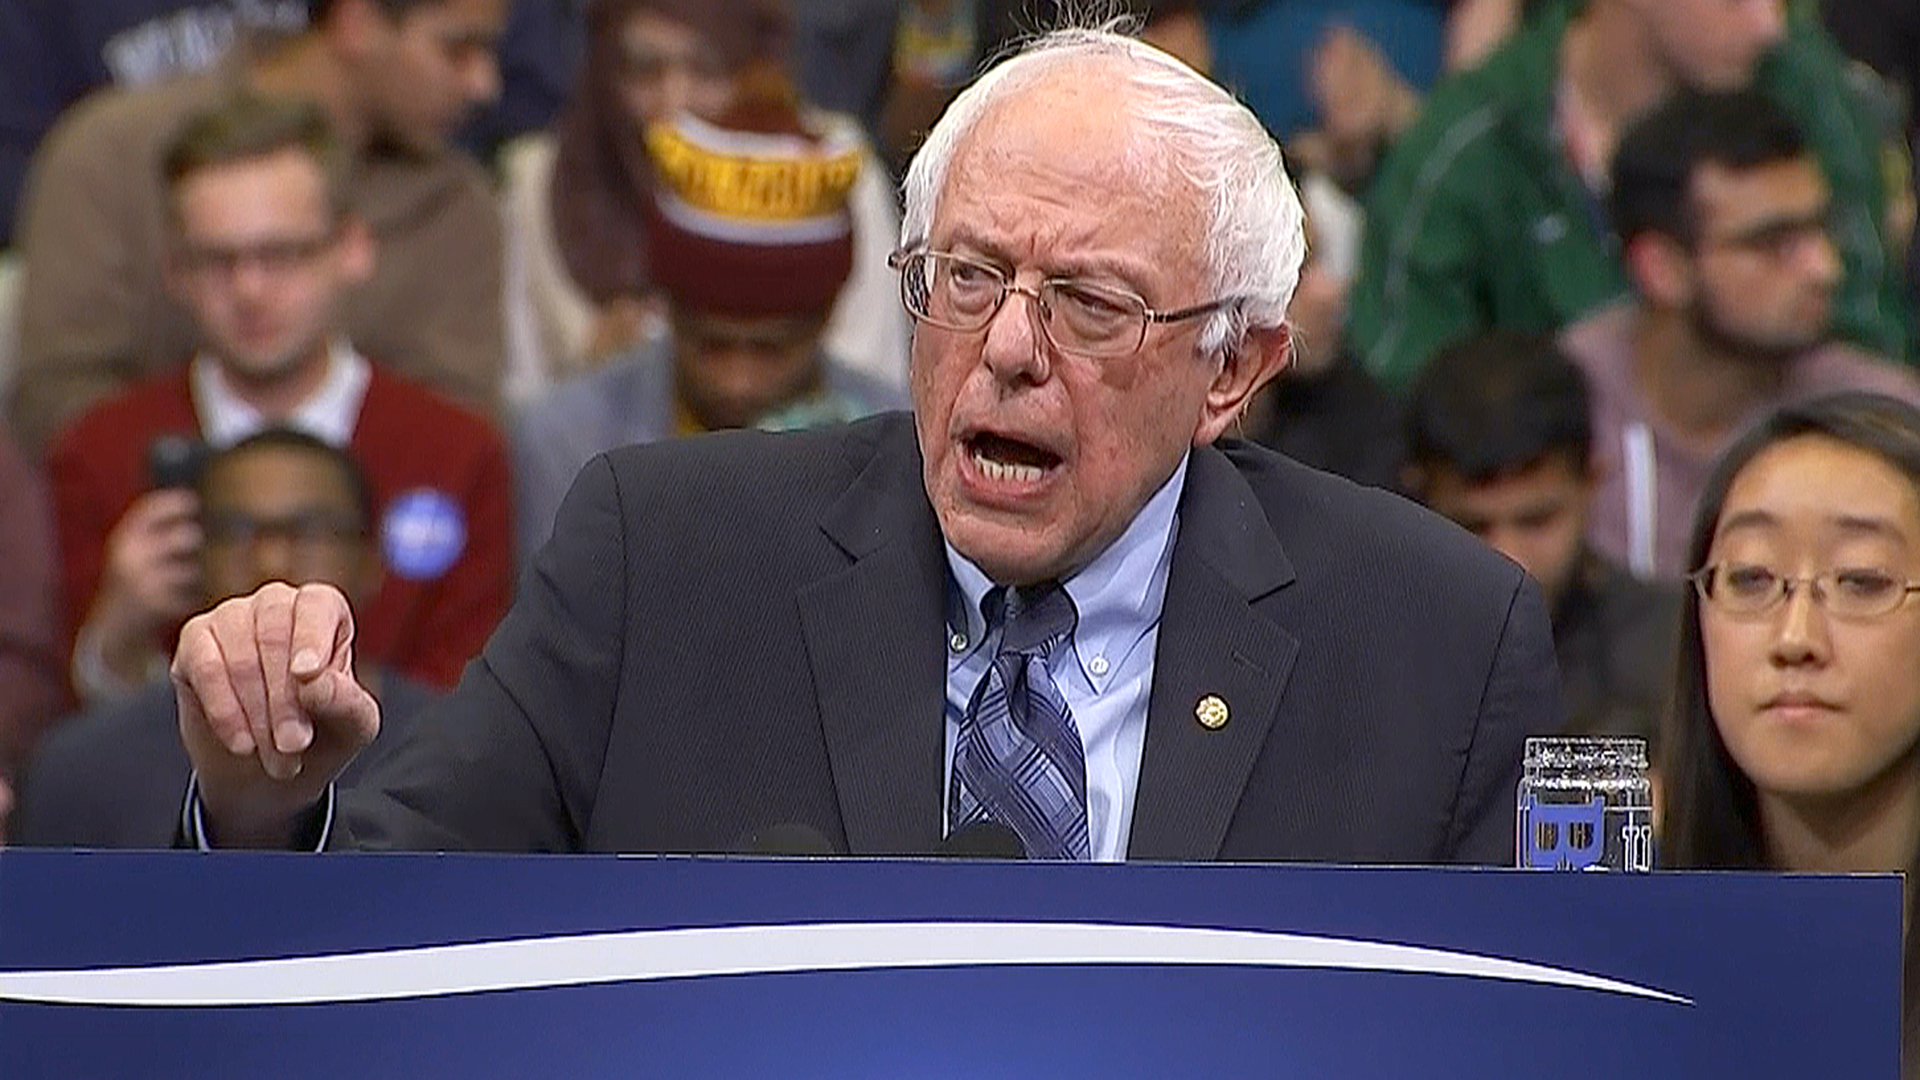 Bernie Sanders Calls for an End to Federal Prohibition on Marijuana